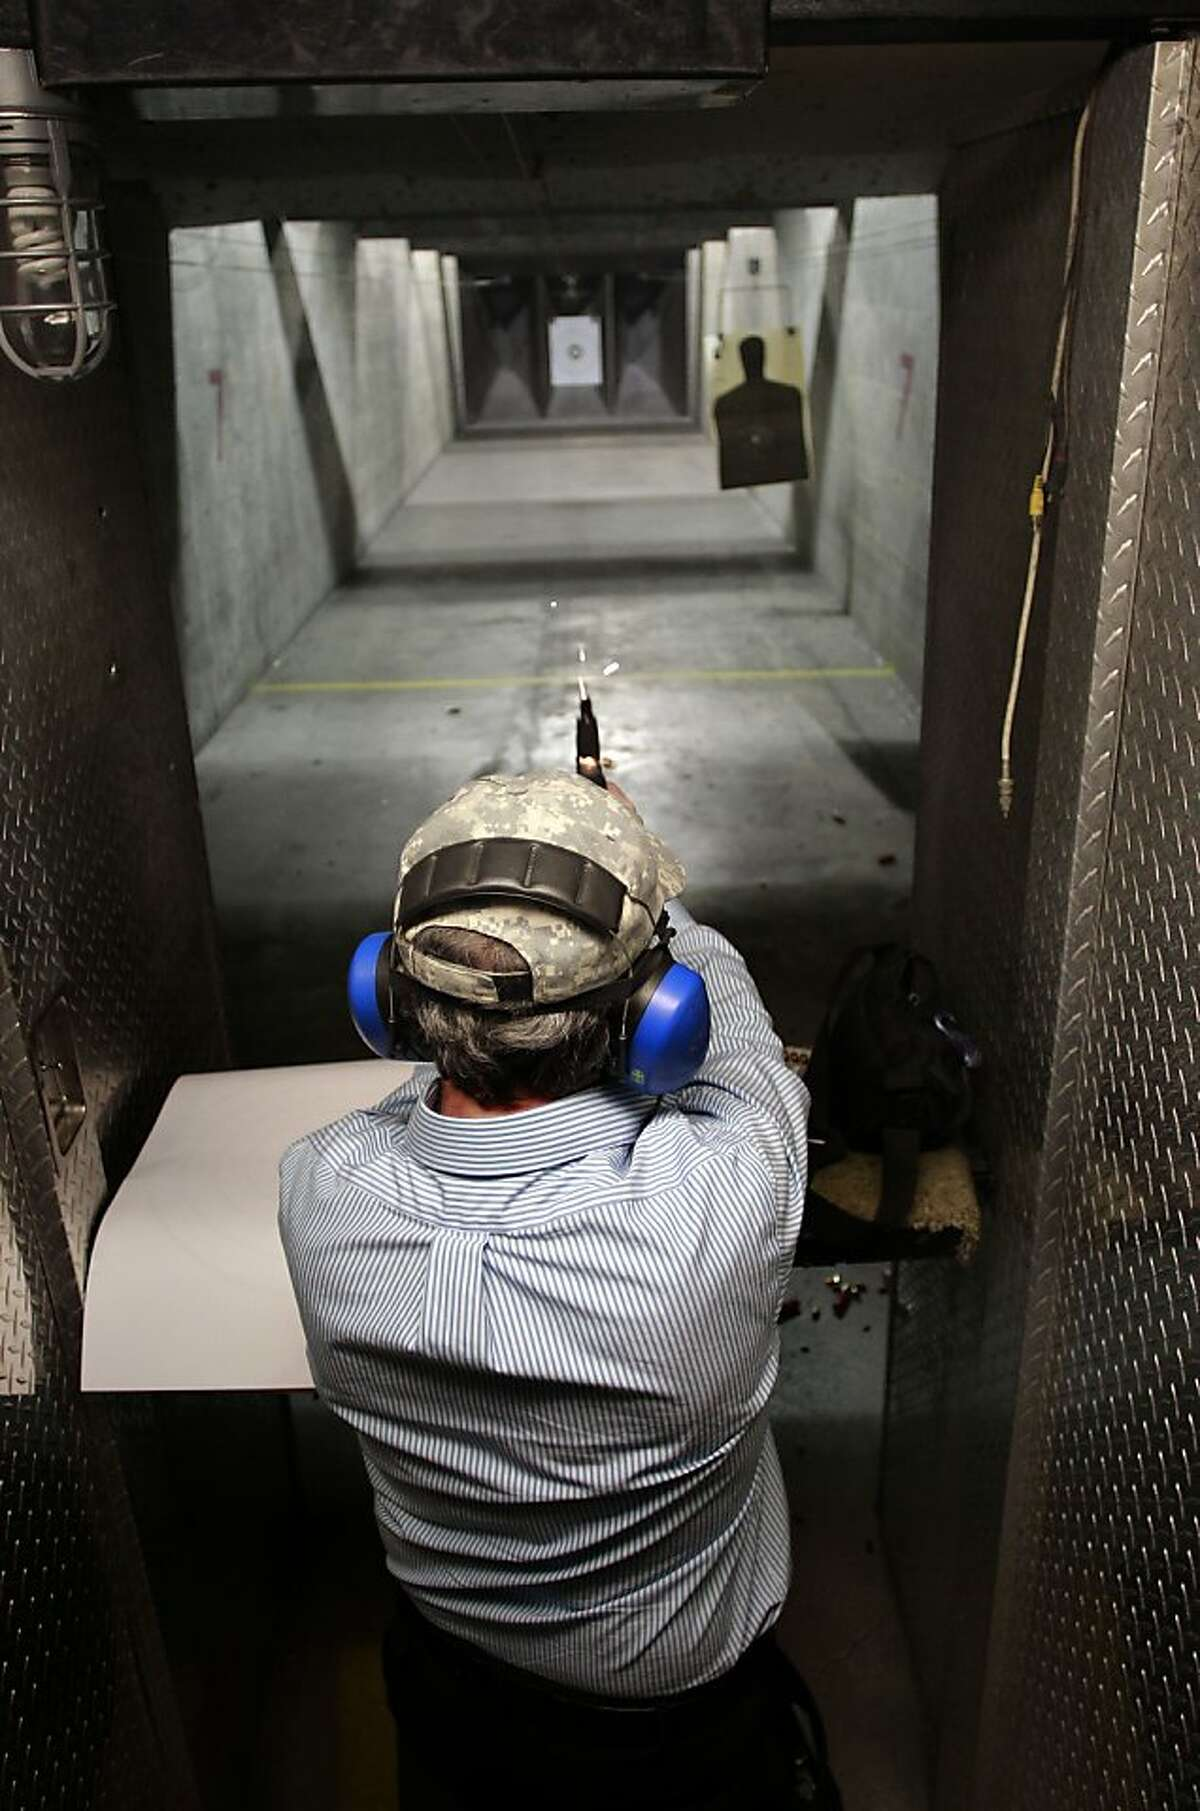 Local gun owner Jeff Levinger, fires his 9mm pistol while taking target practice at the Jackson Arms shooting range in South San Francisco, Calif., on Saturday April 27, 2013. A court case currently before the Ninth Circuit could drastically change the way concealed weapons permits are issued in California. Gun owners are hoping it will be easier to get permits and possibly increase the number of permits from 35,000 now to 1.2 million statewide within four years.